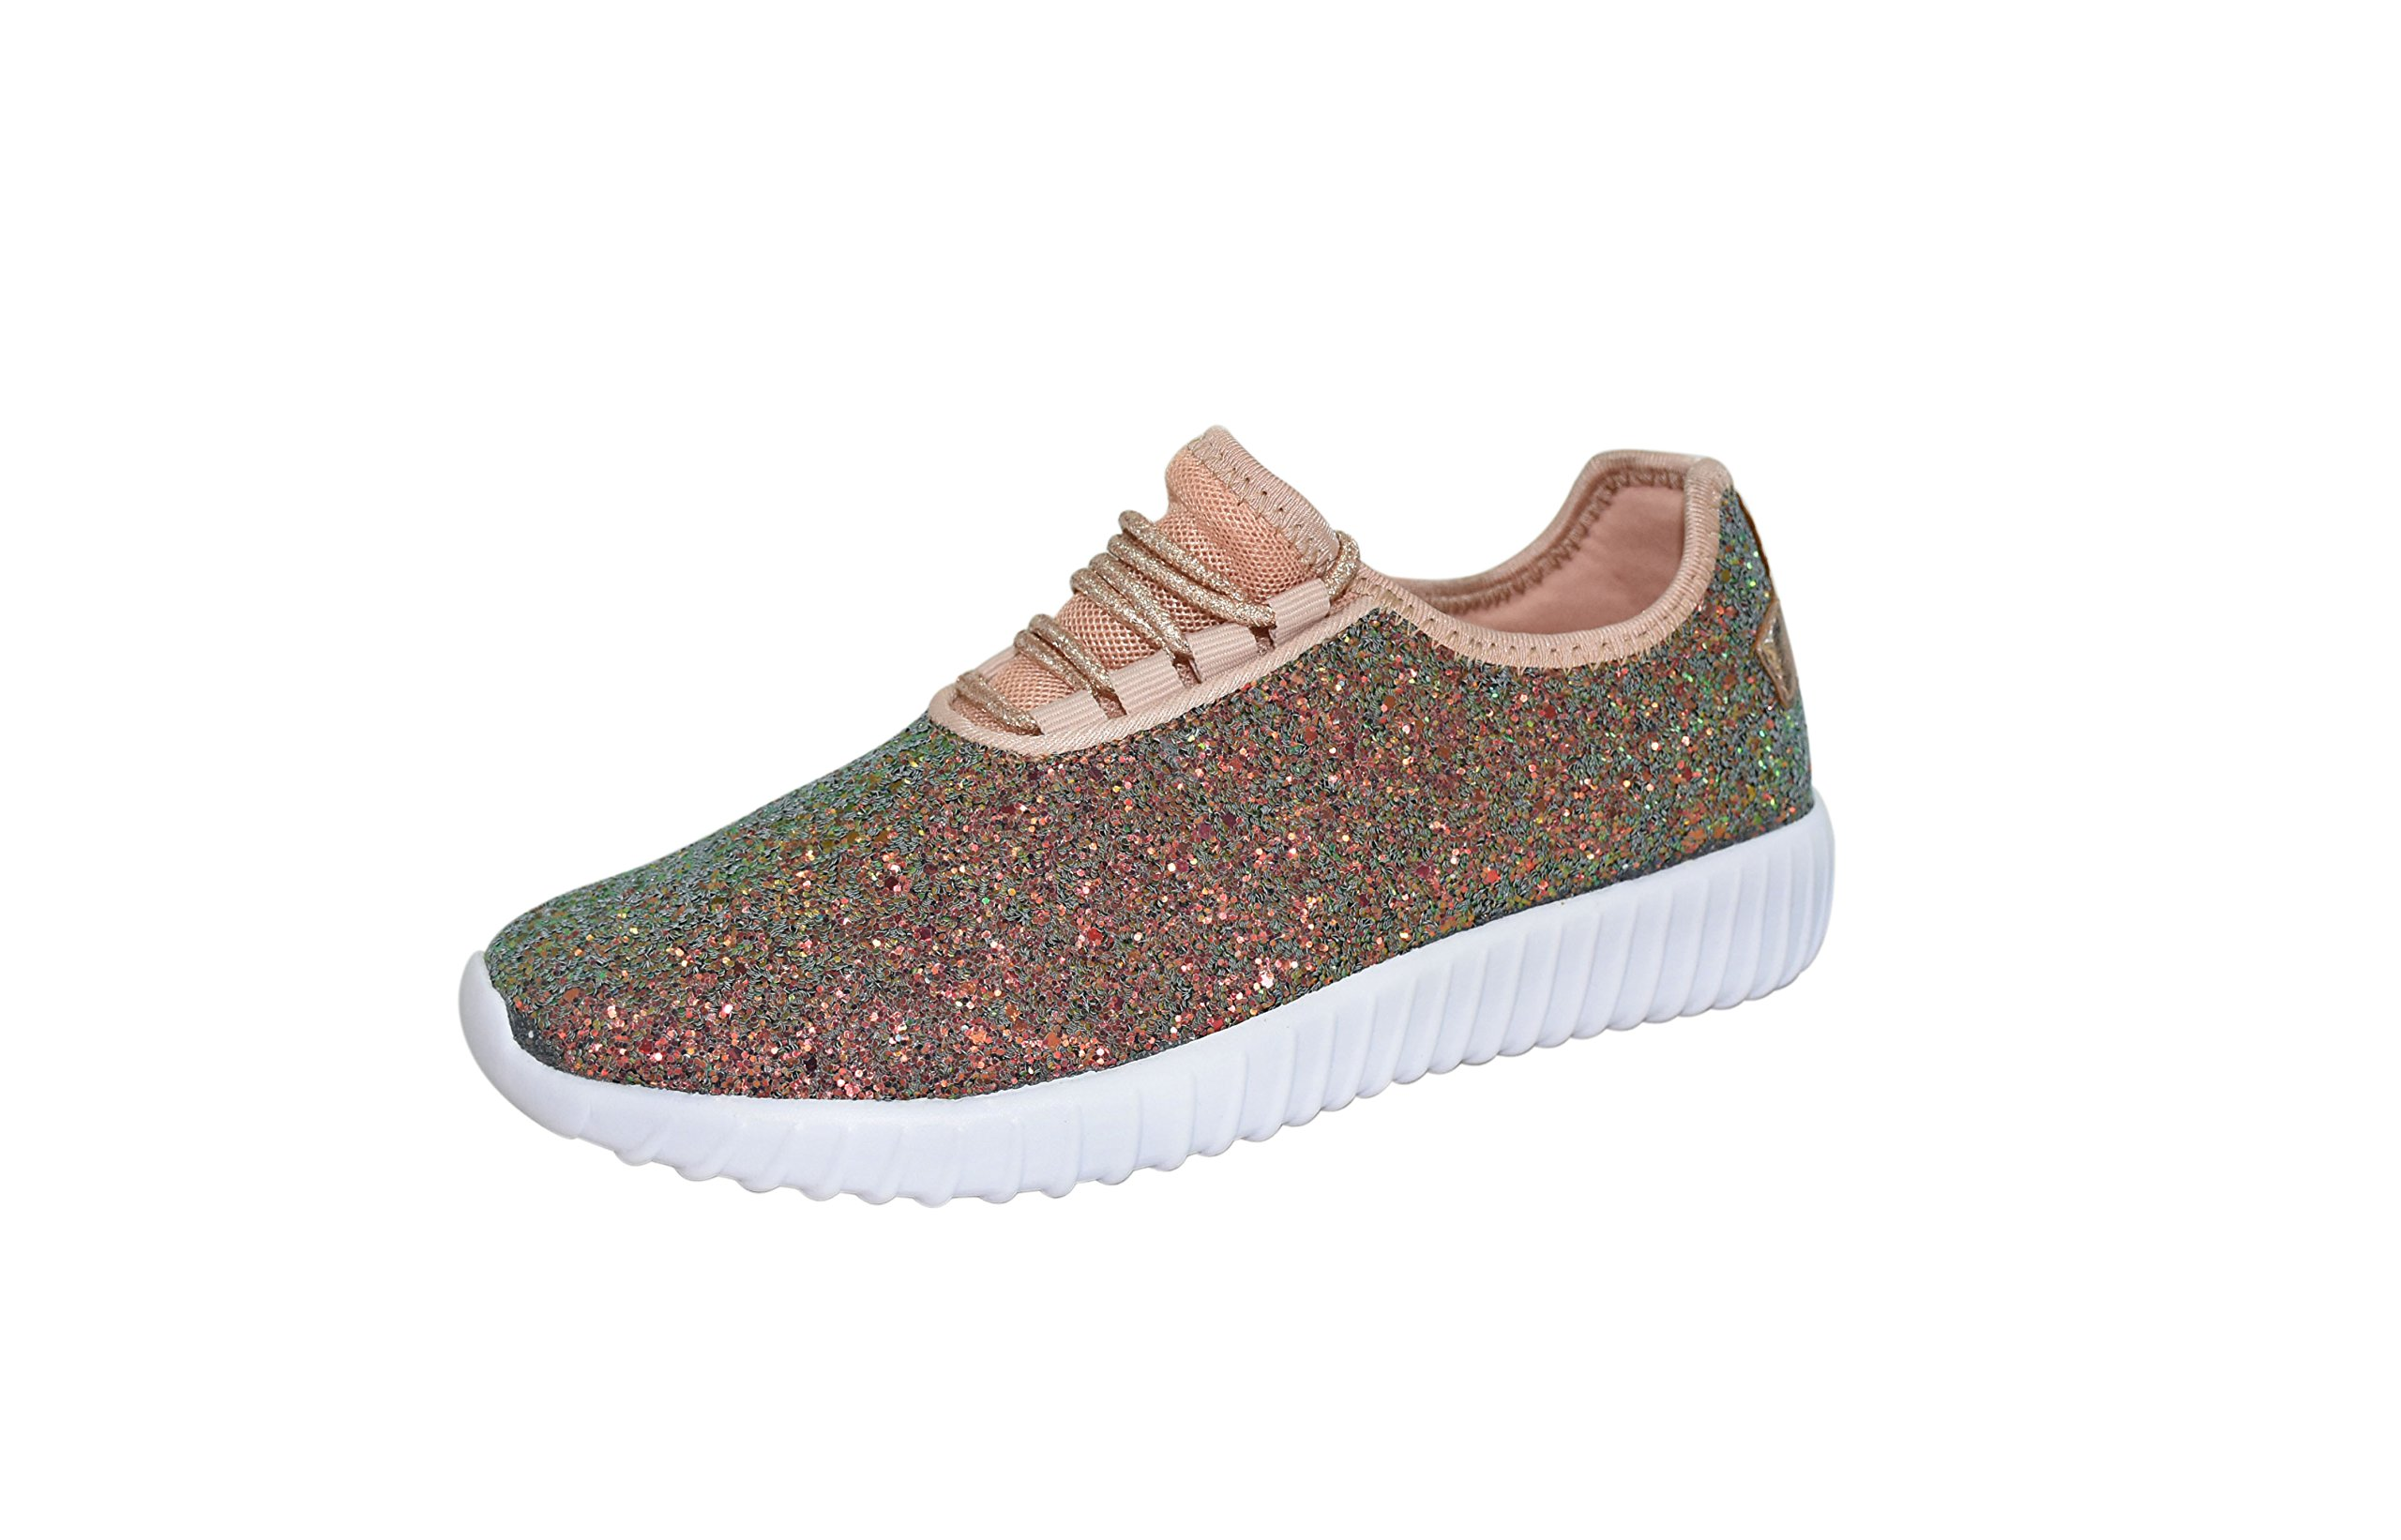 ROXY-ROSE Women's Fashion Glitter Sneaker Walking Shoes Stylish Shoes Sparkly Shoes Women (7.5 B(M) US, Green Hologram)